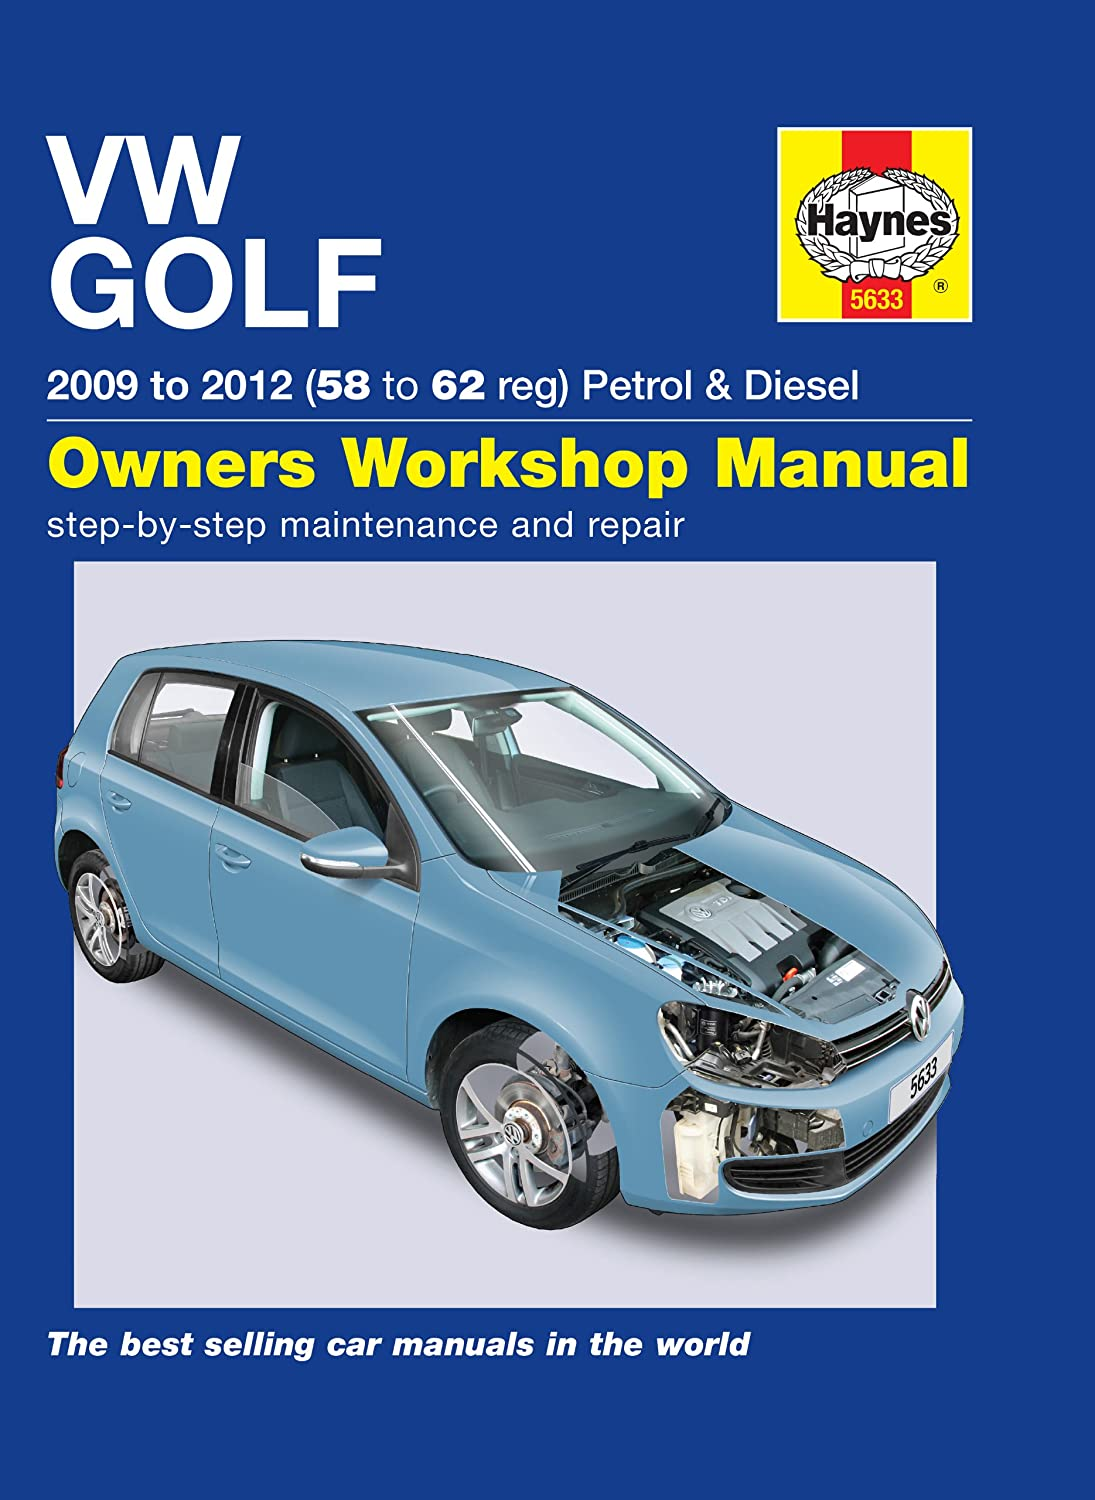 vw golf jetta service and repair manual 2004 2009 service rh amazon co uk 2009 VW Jetta TDI Wagon 2009 VW Jetta TDI Red